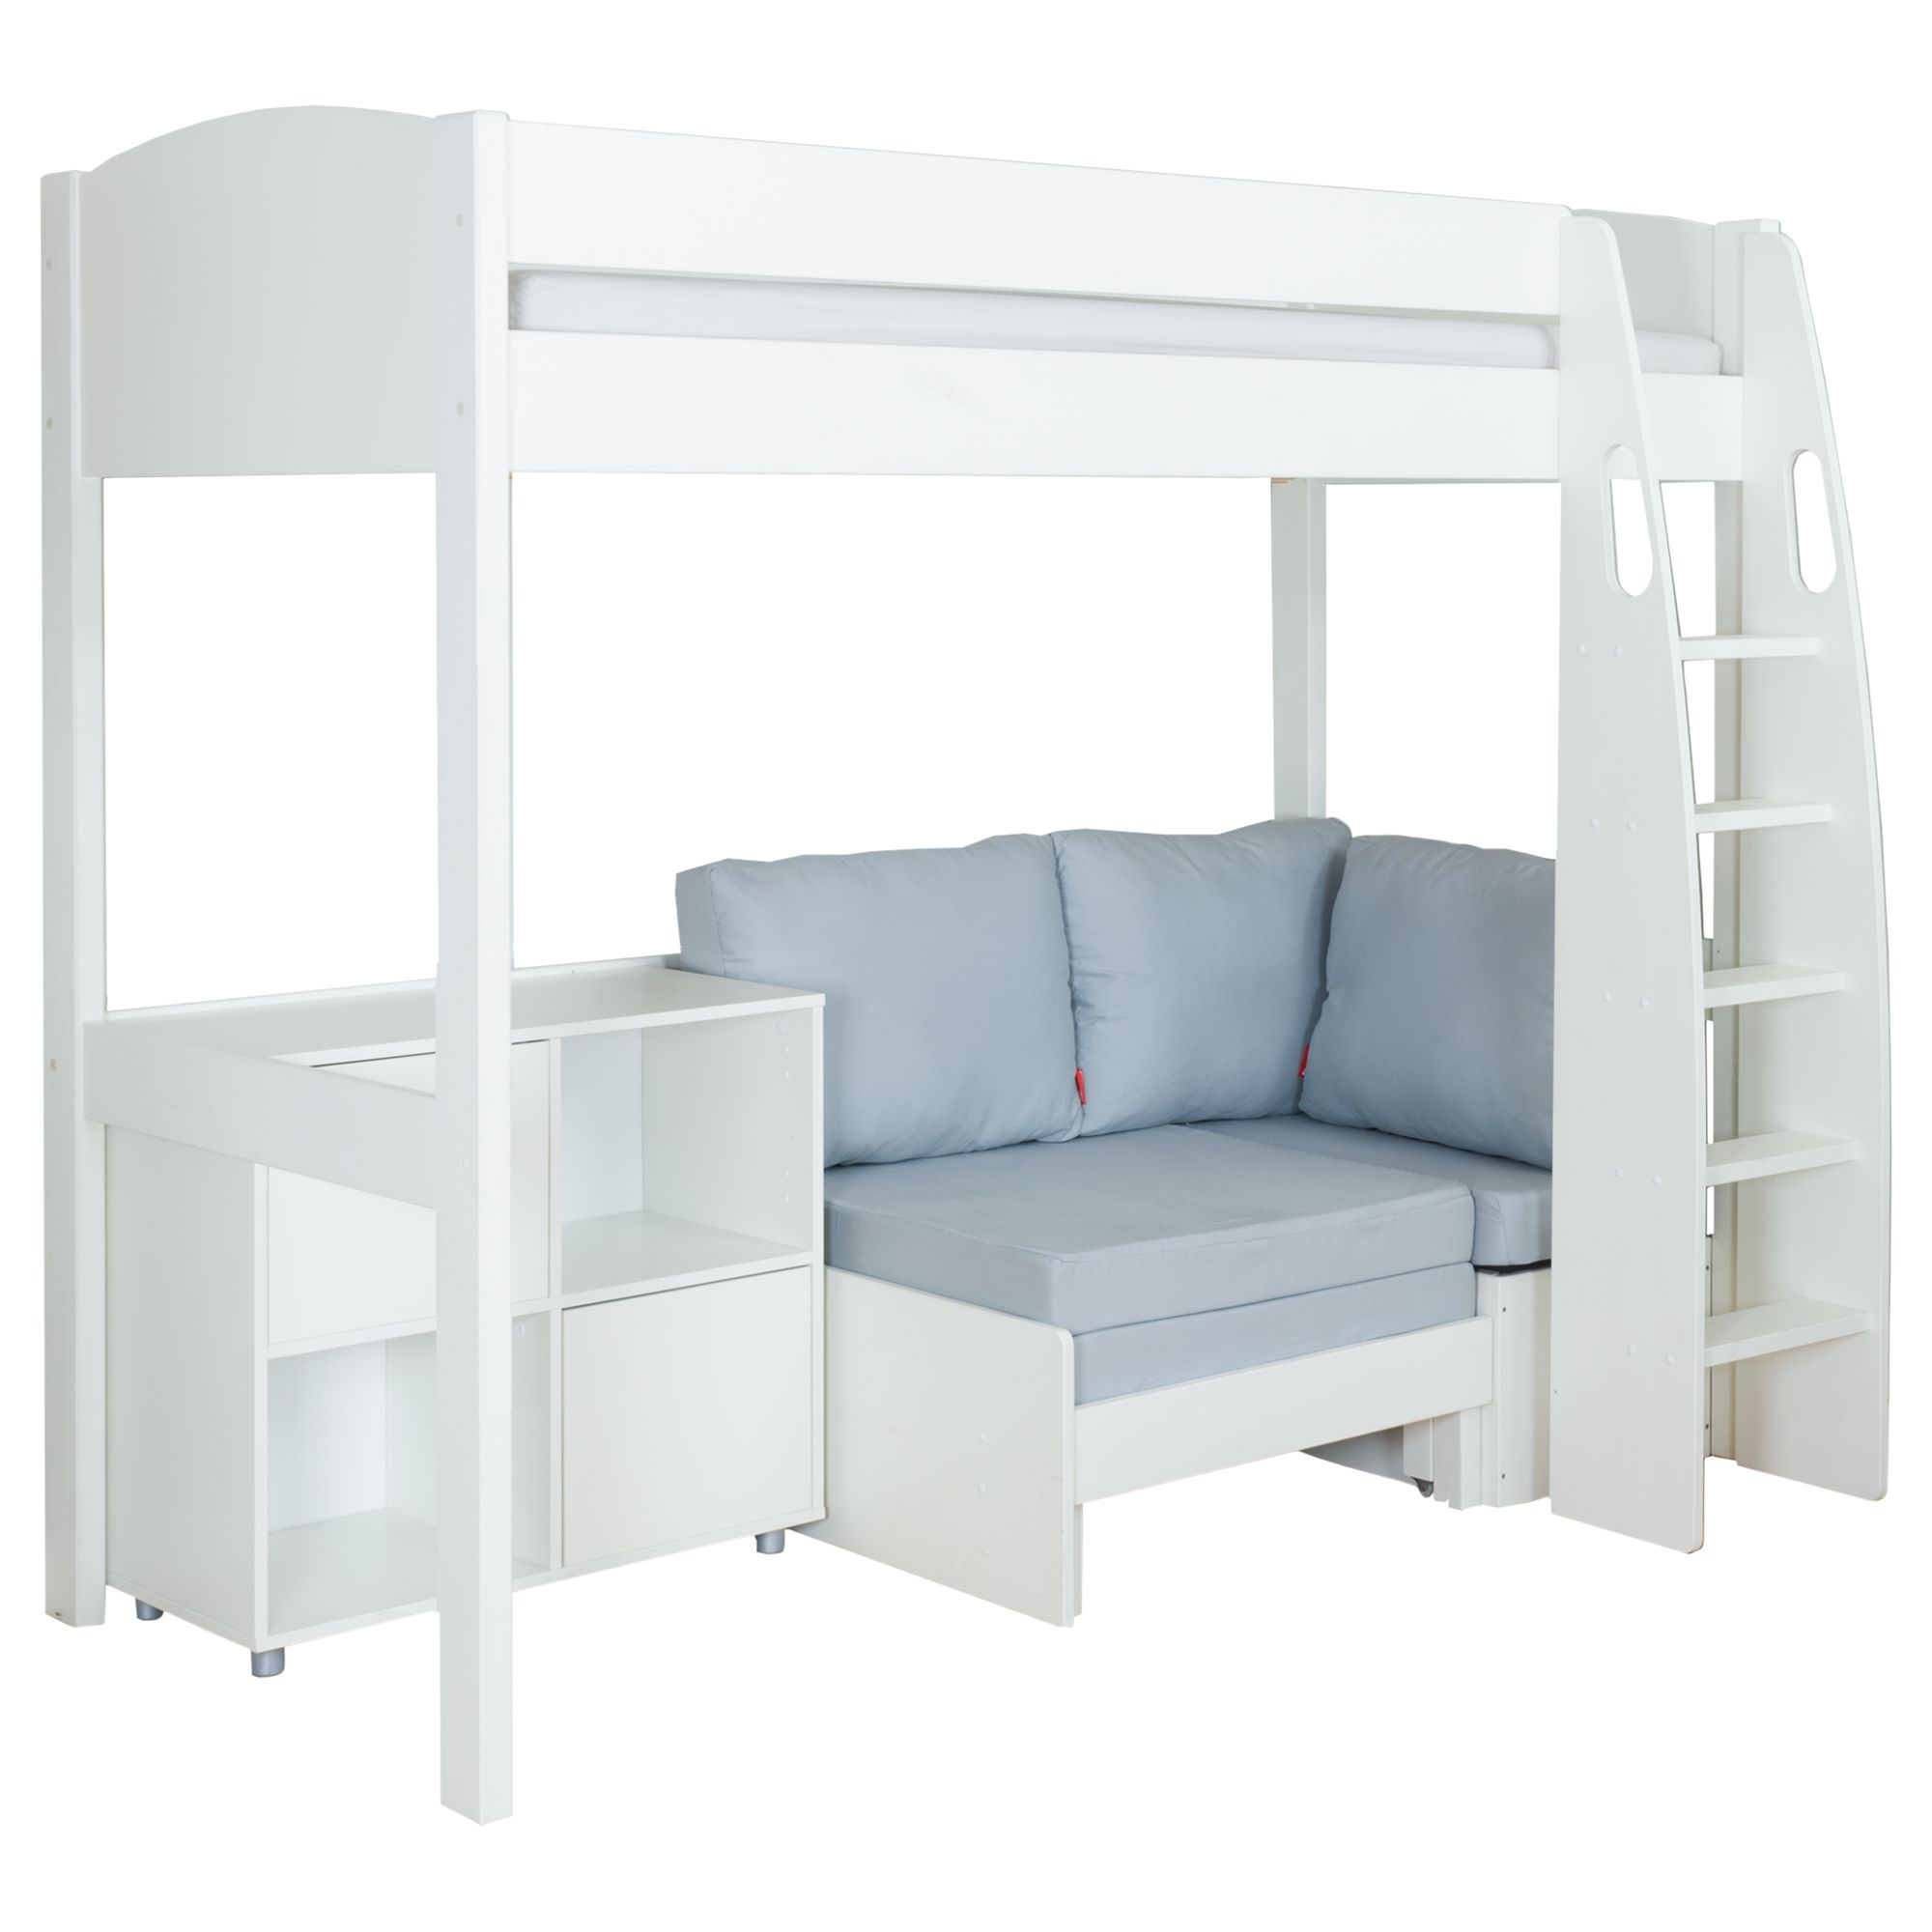 Stompa Stompa Uno S Plus High-Sleeper with White Headboard, Grey Chair Bed and 2 Door Cube Unit